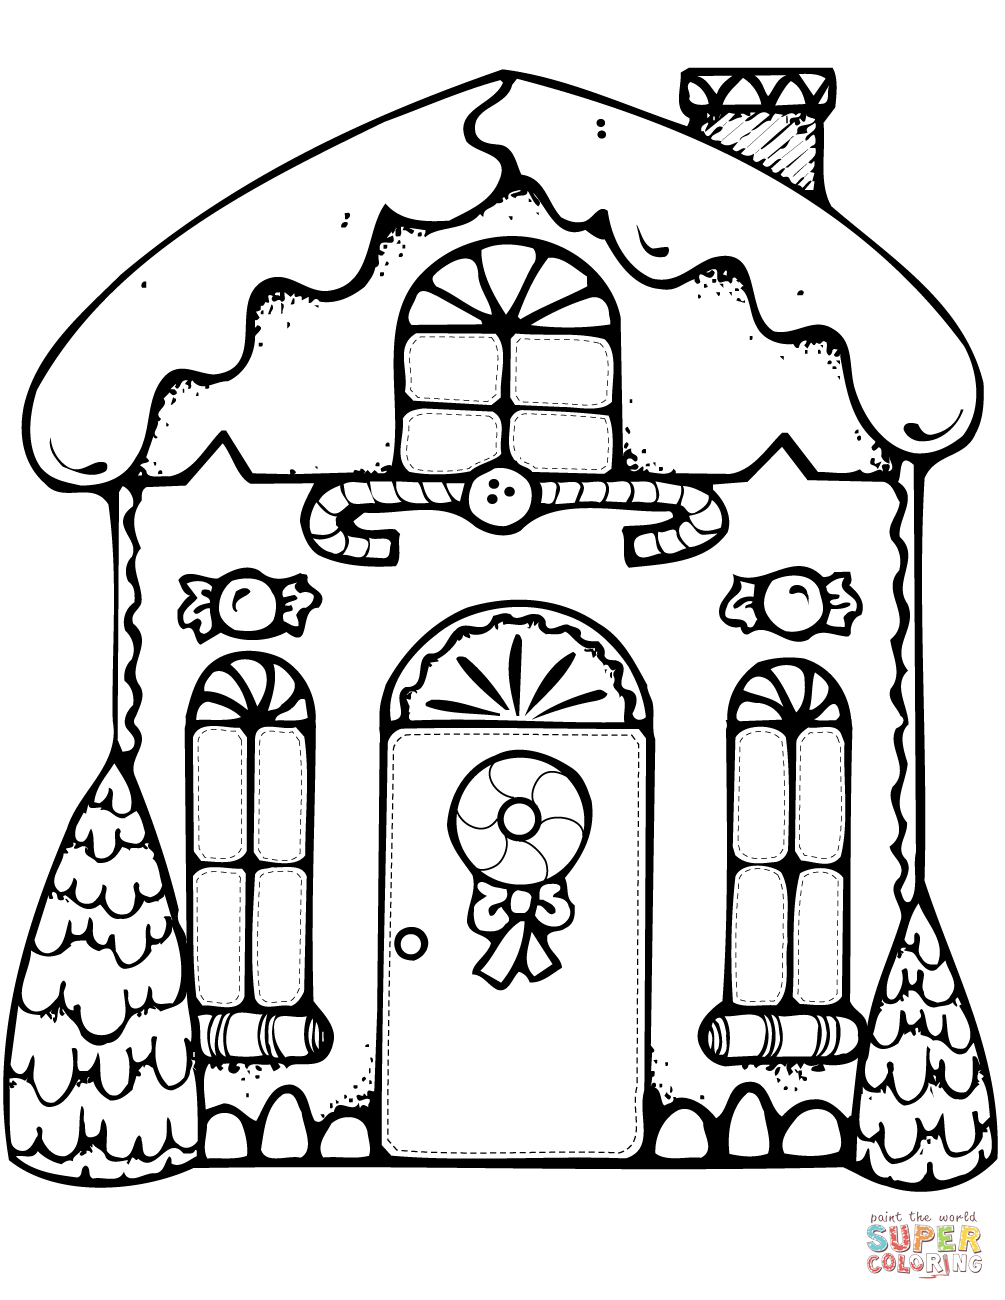 1005x1300 modern ideas gingerbread house coloring page xmas free printable